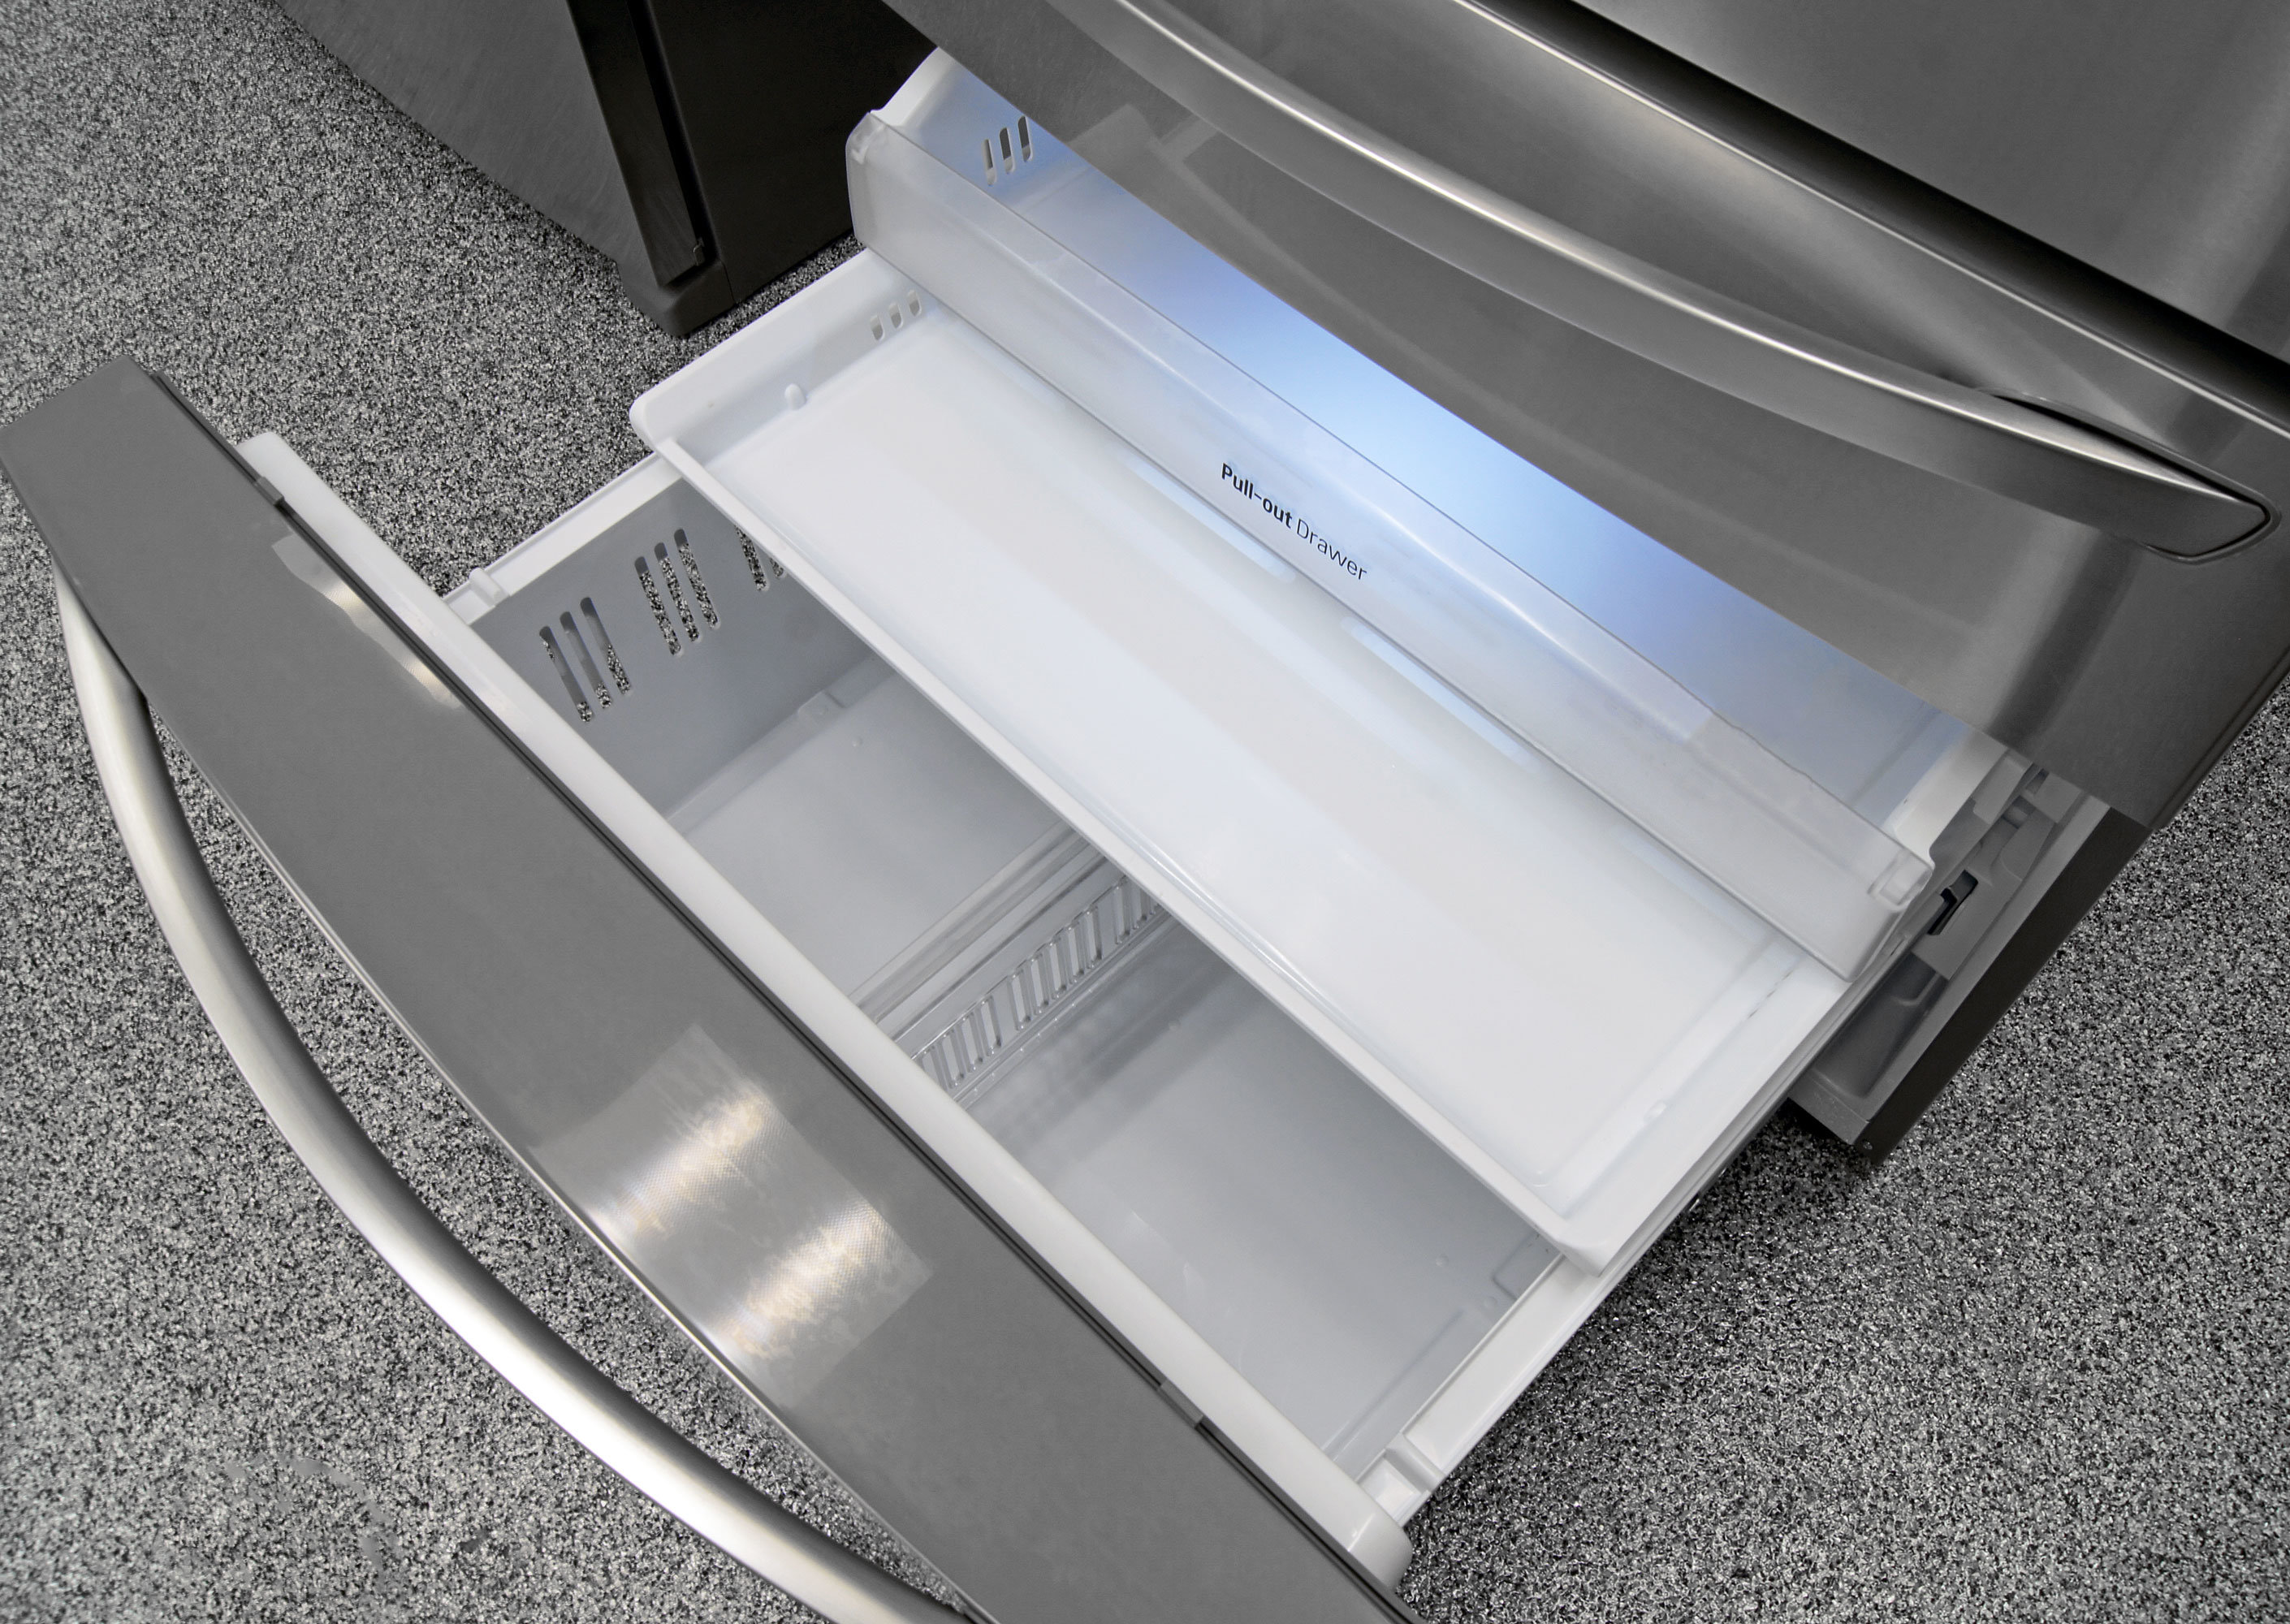 The LG LMXS30786S's freezer door opens out far enough that accessing any of the three sliding drawers shouldn't be too irritating to your back.